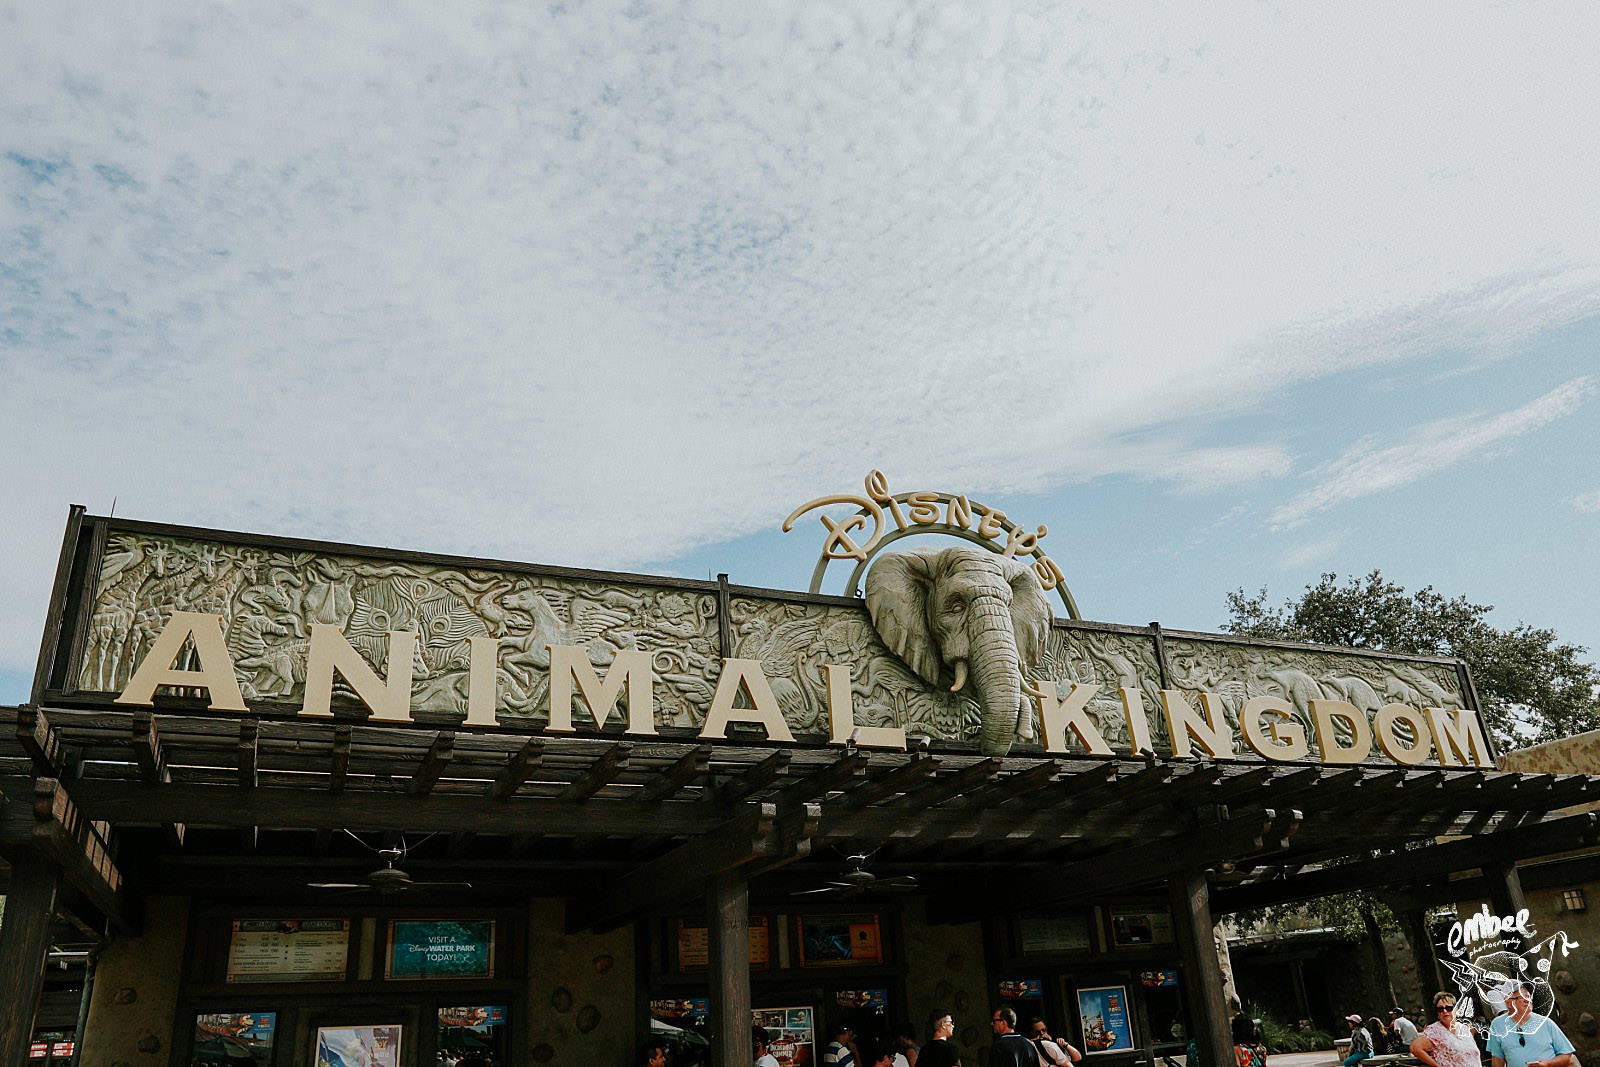 animal kingdom sign in disney world